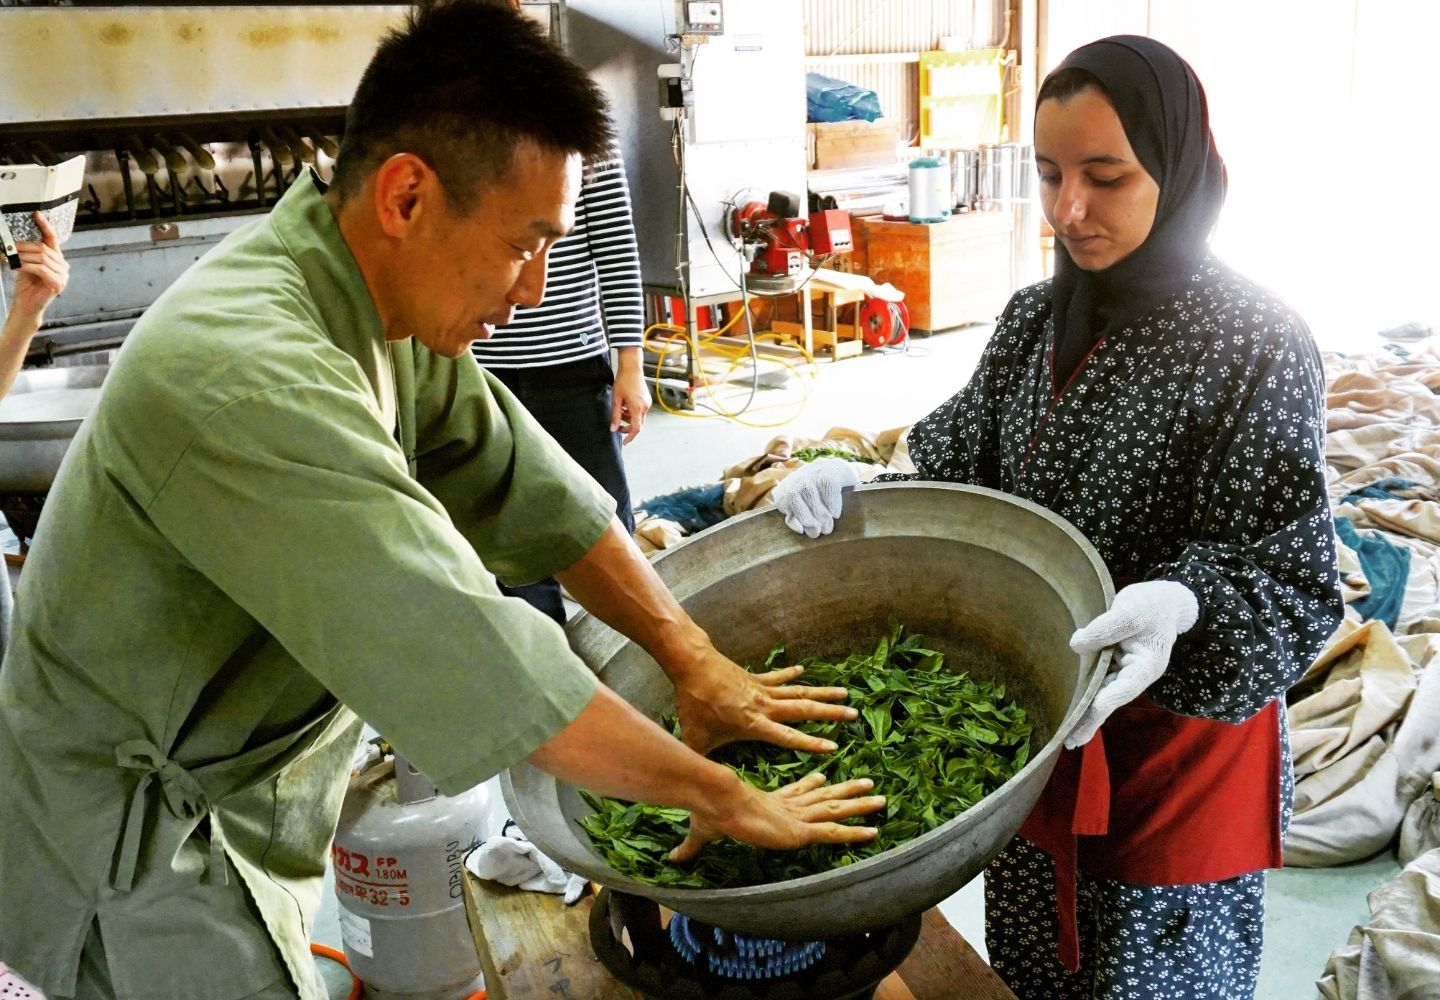 A photo showing two people panning some tea leaves.